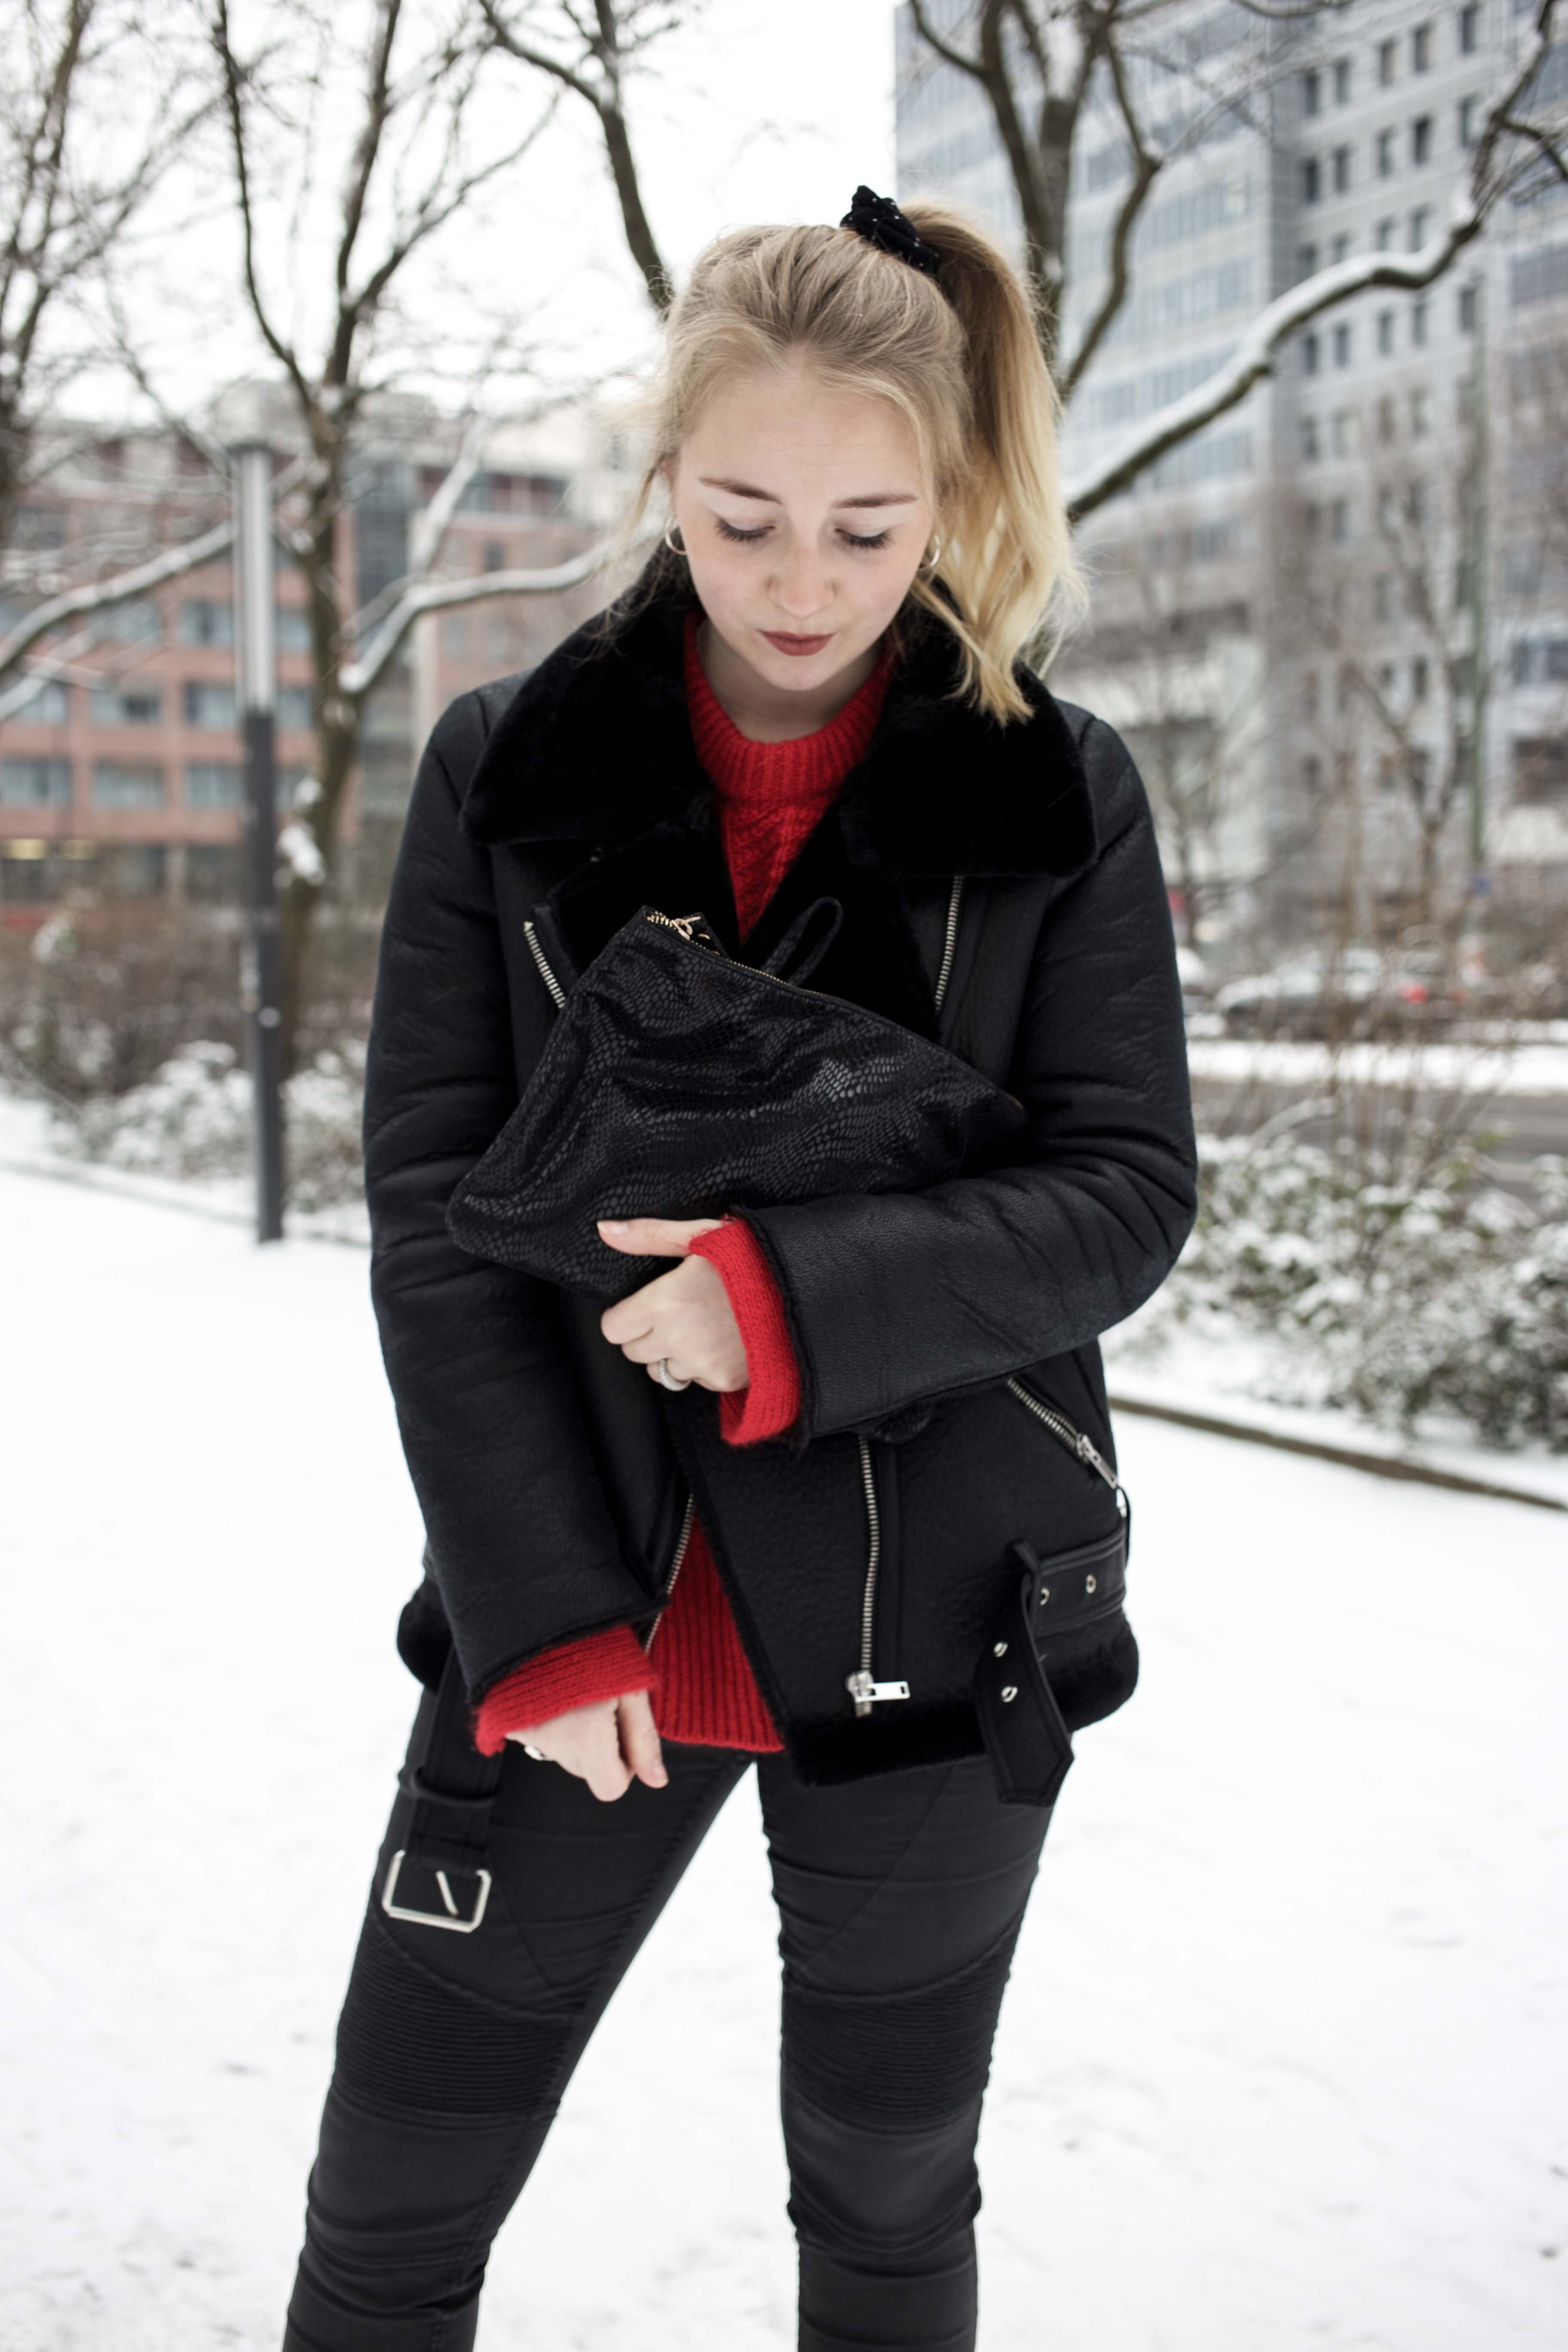 roter-pullover-outfit-berlin-schnee-streetstyle-fashionblog-modeblog_8371